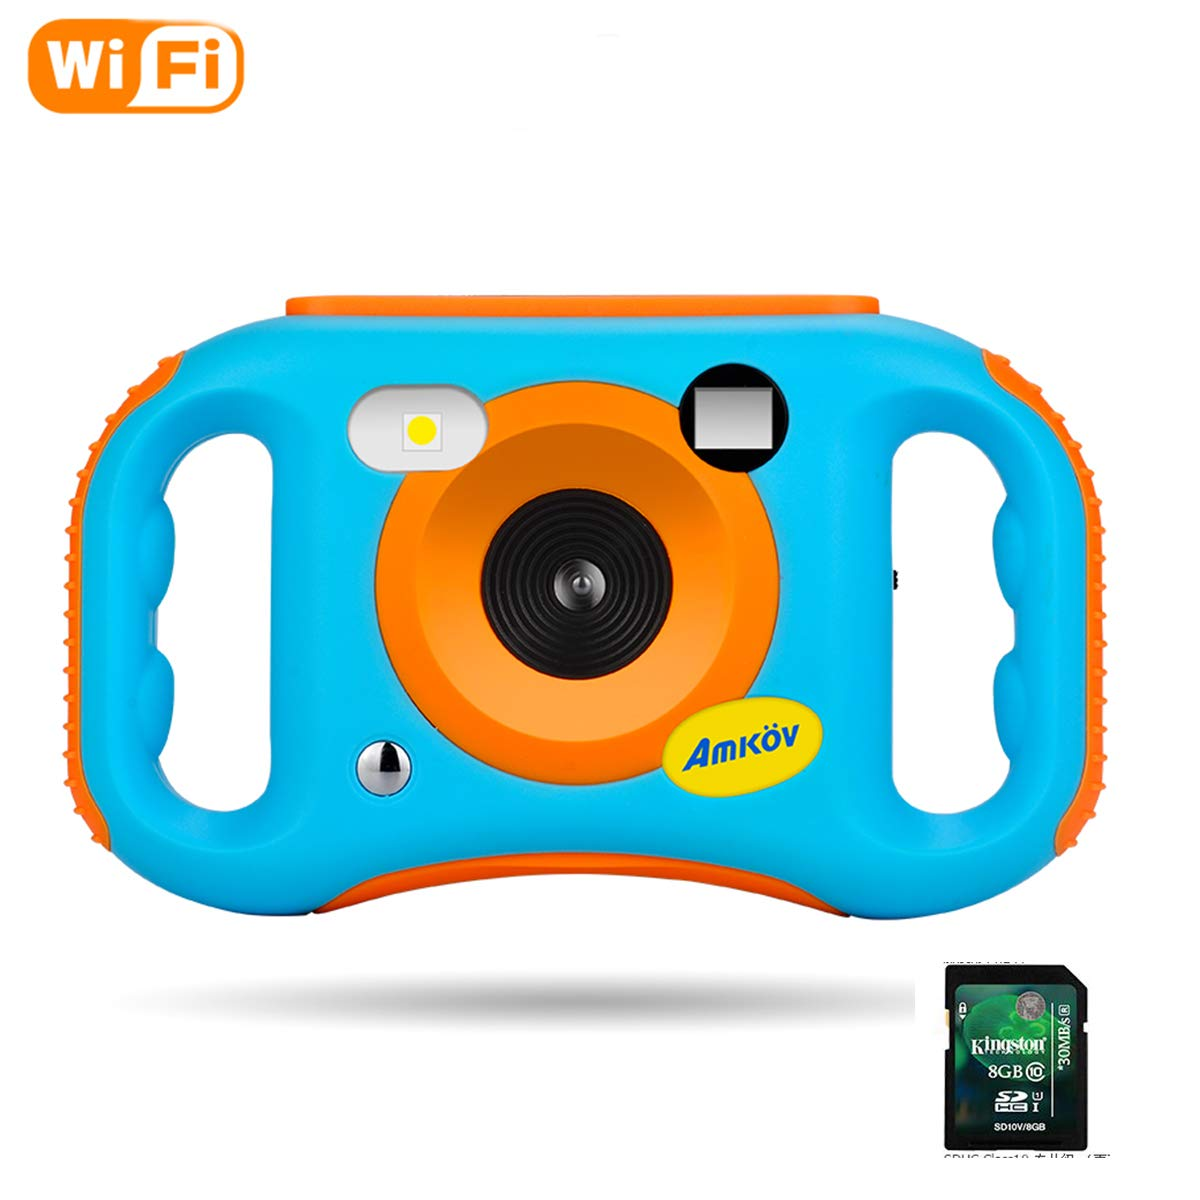 Amkov WiFi Kids Camera with 8G SD Card Digital Camera with WiFi for Kids Children Creative Digital Camera, 5Mp 1.77 Inch TFT Display Video Recording(Blue) AMKFP004